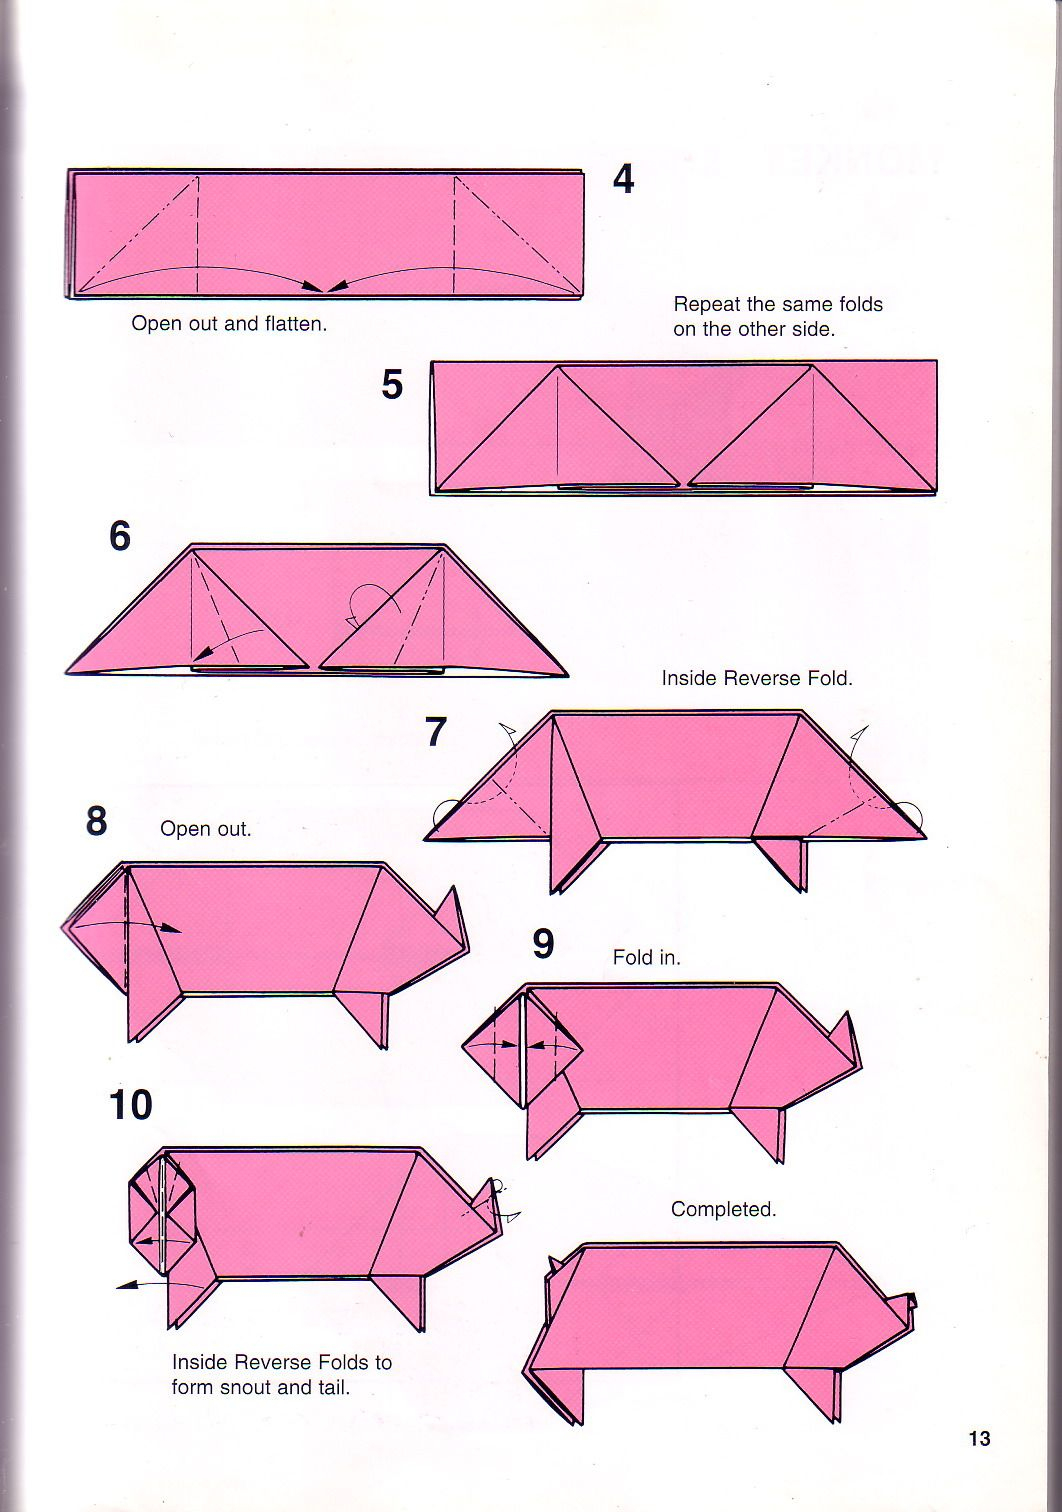 Pig Origami Instructions | Origami Printable Instructions - Free Easy Origami Instructions Printable